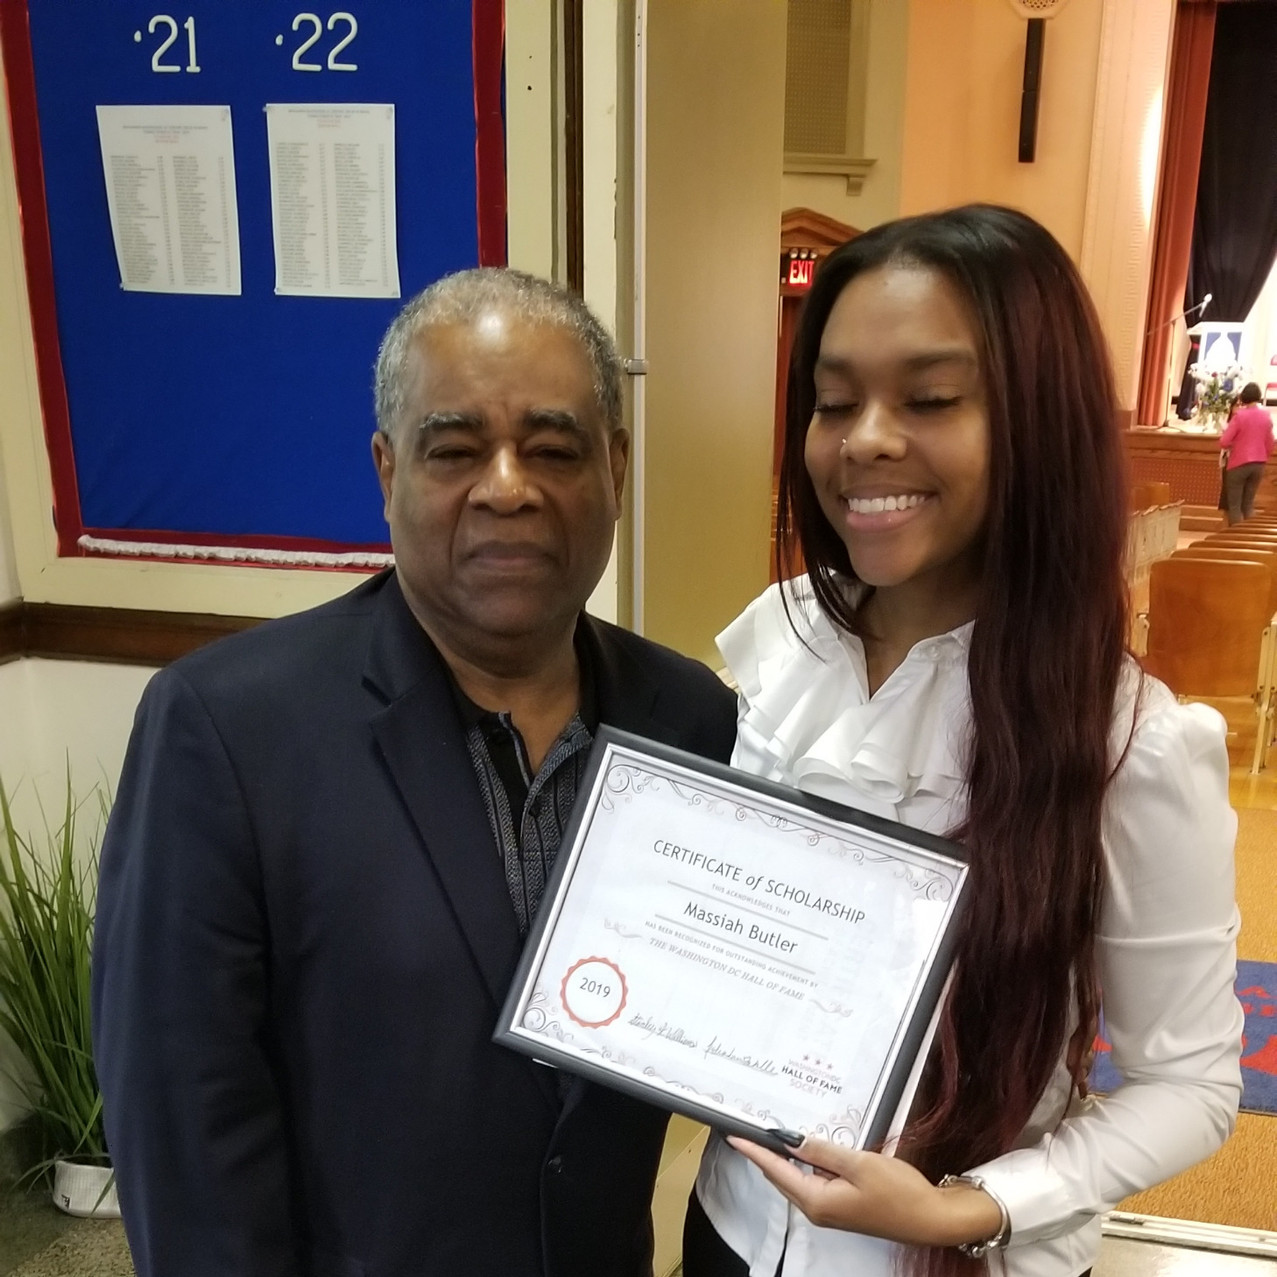 DCHOF President Stanley K. Williams with Scholarship Award Recipient, 2019